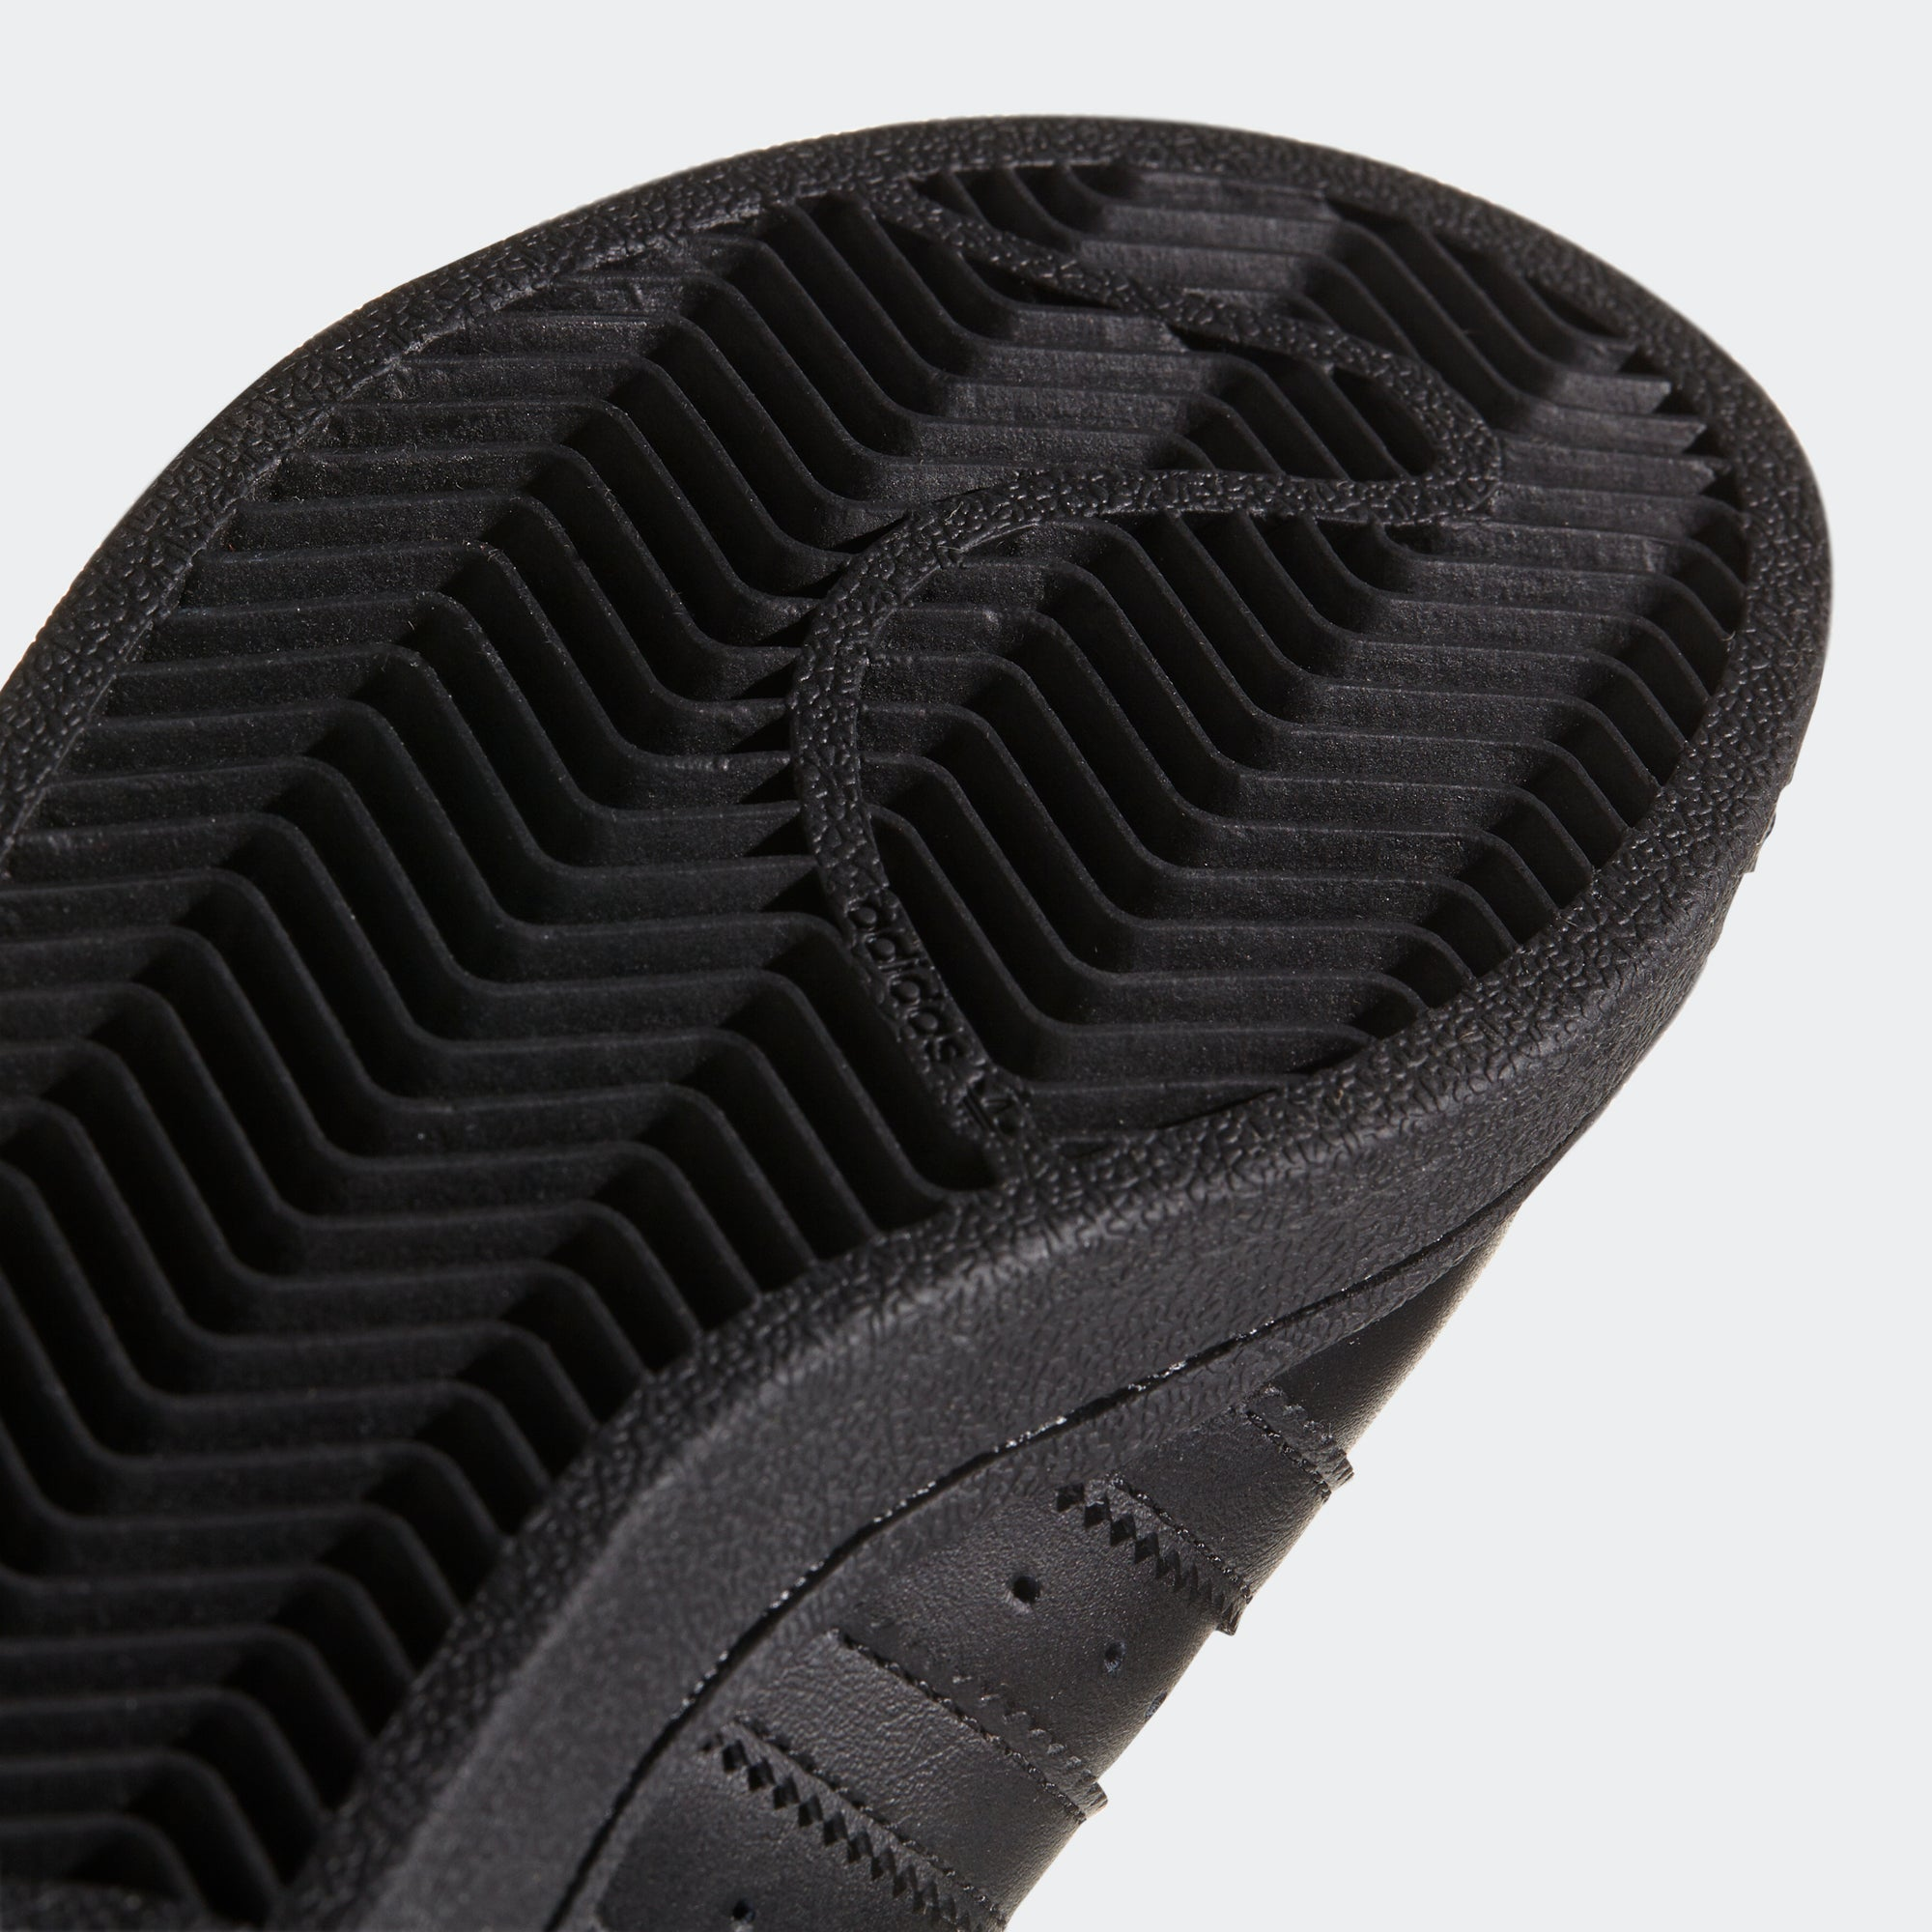 new arrival fabb8 77908 adidas Superstar Foundation Shoes Triple Black | Chicago ...